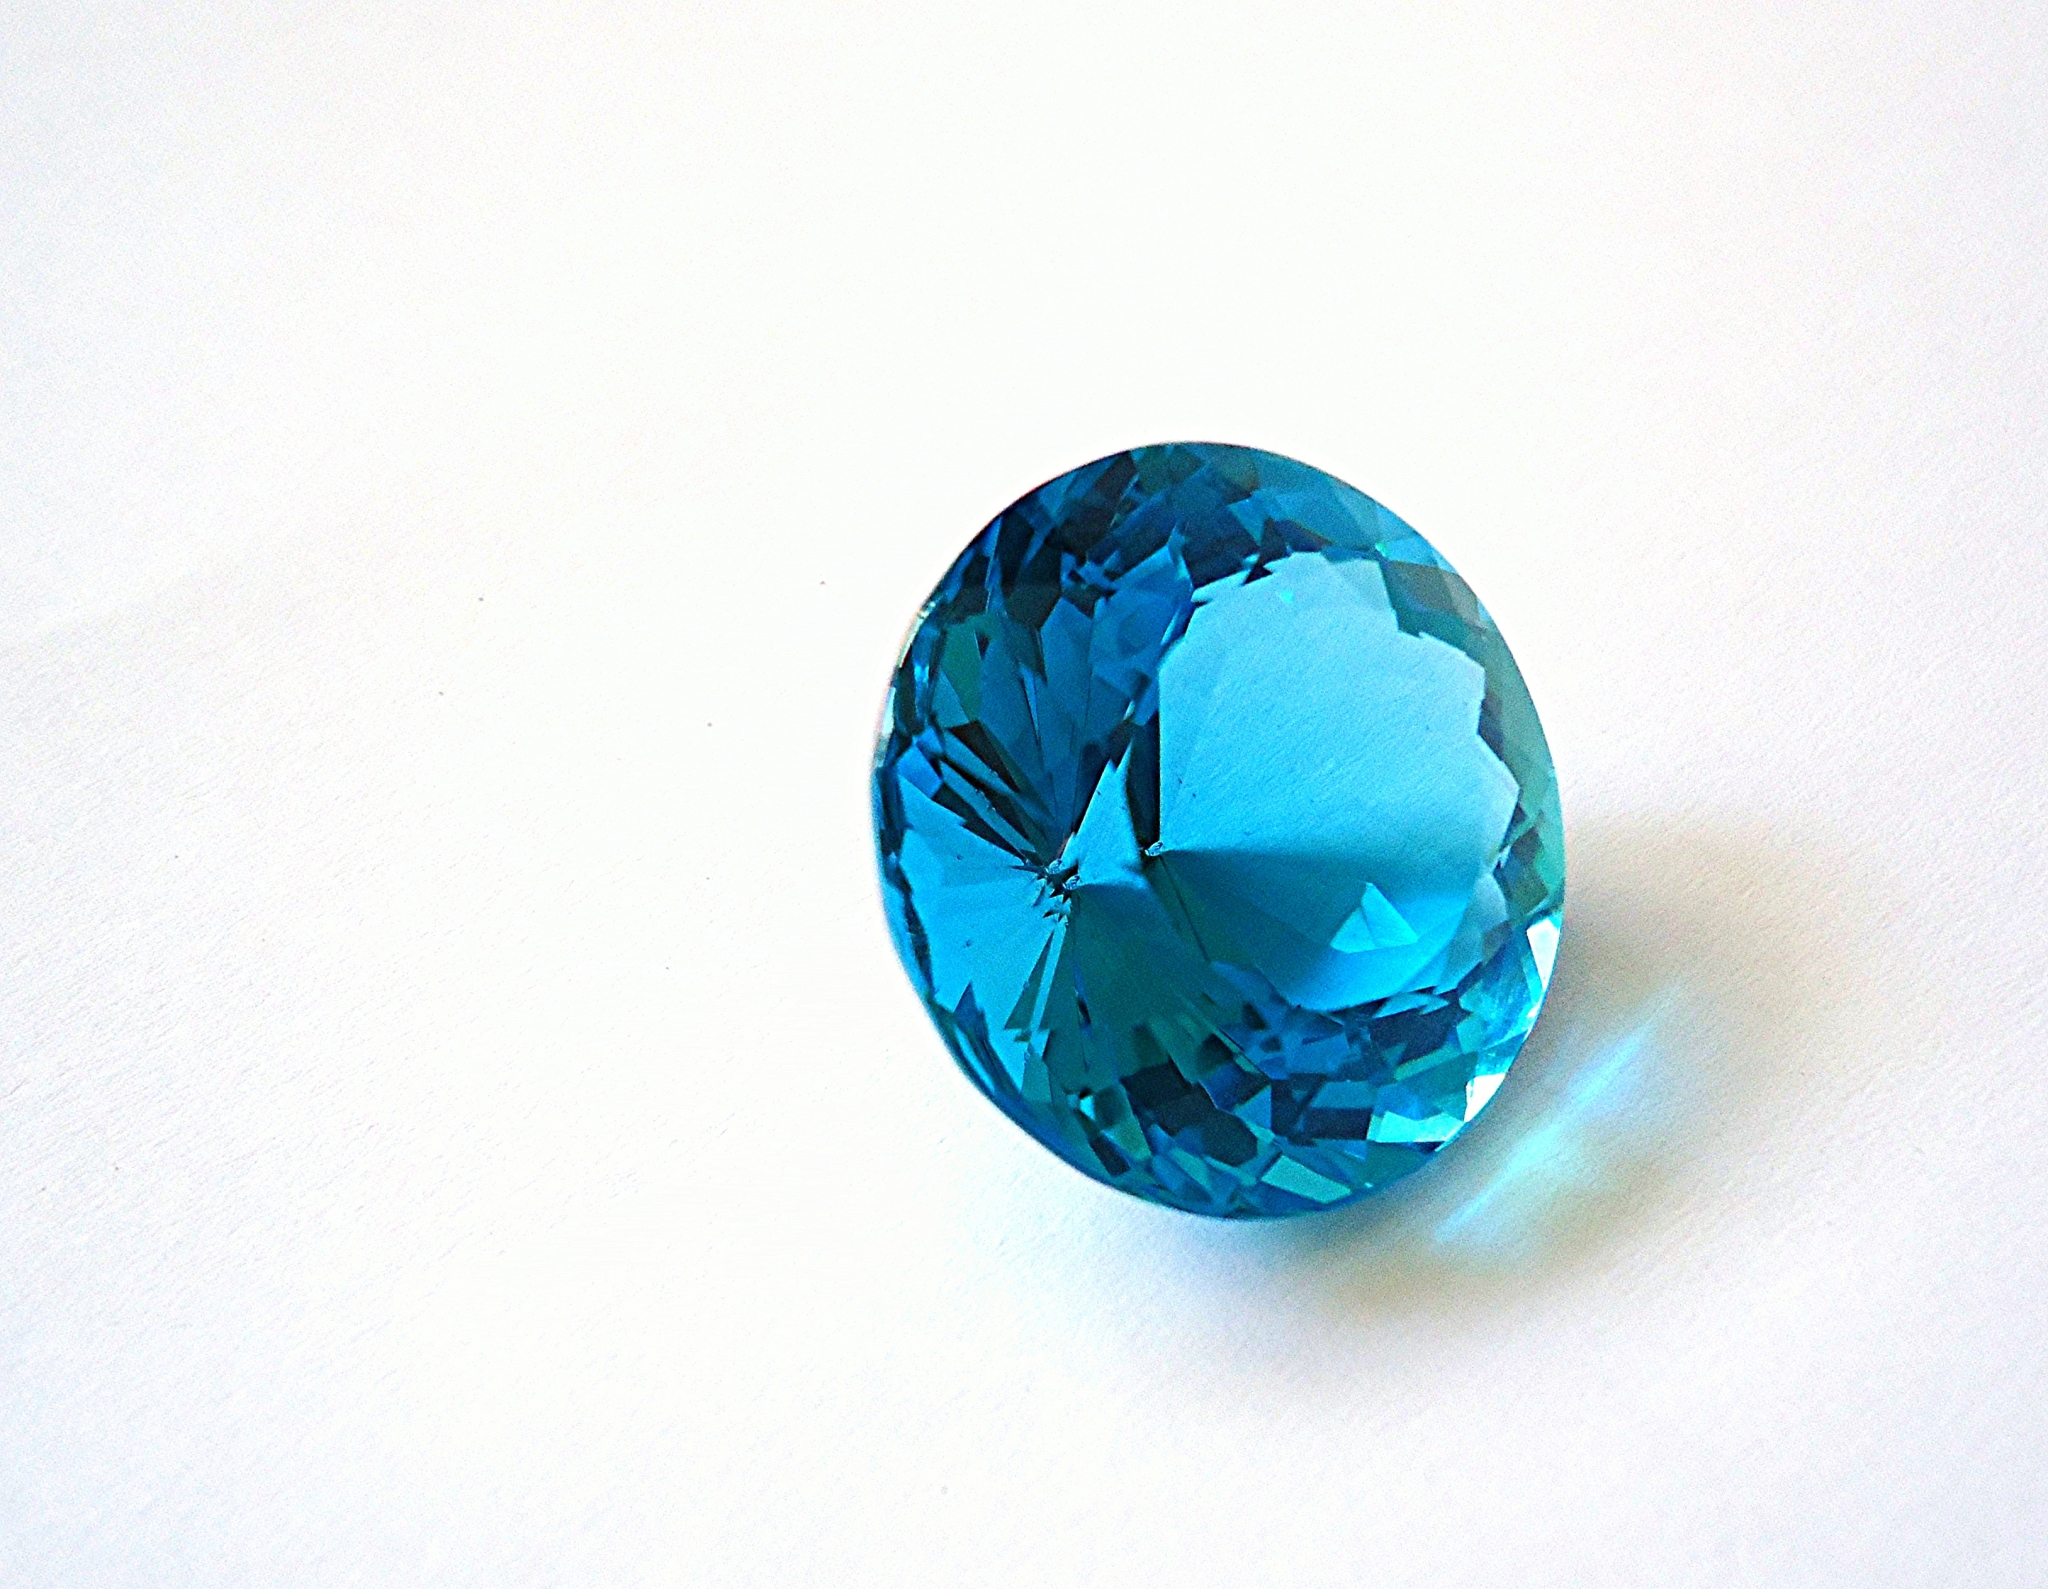 feast eyes the on in blue gemstone world photos your largest topaz